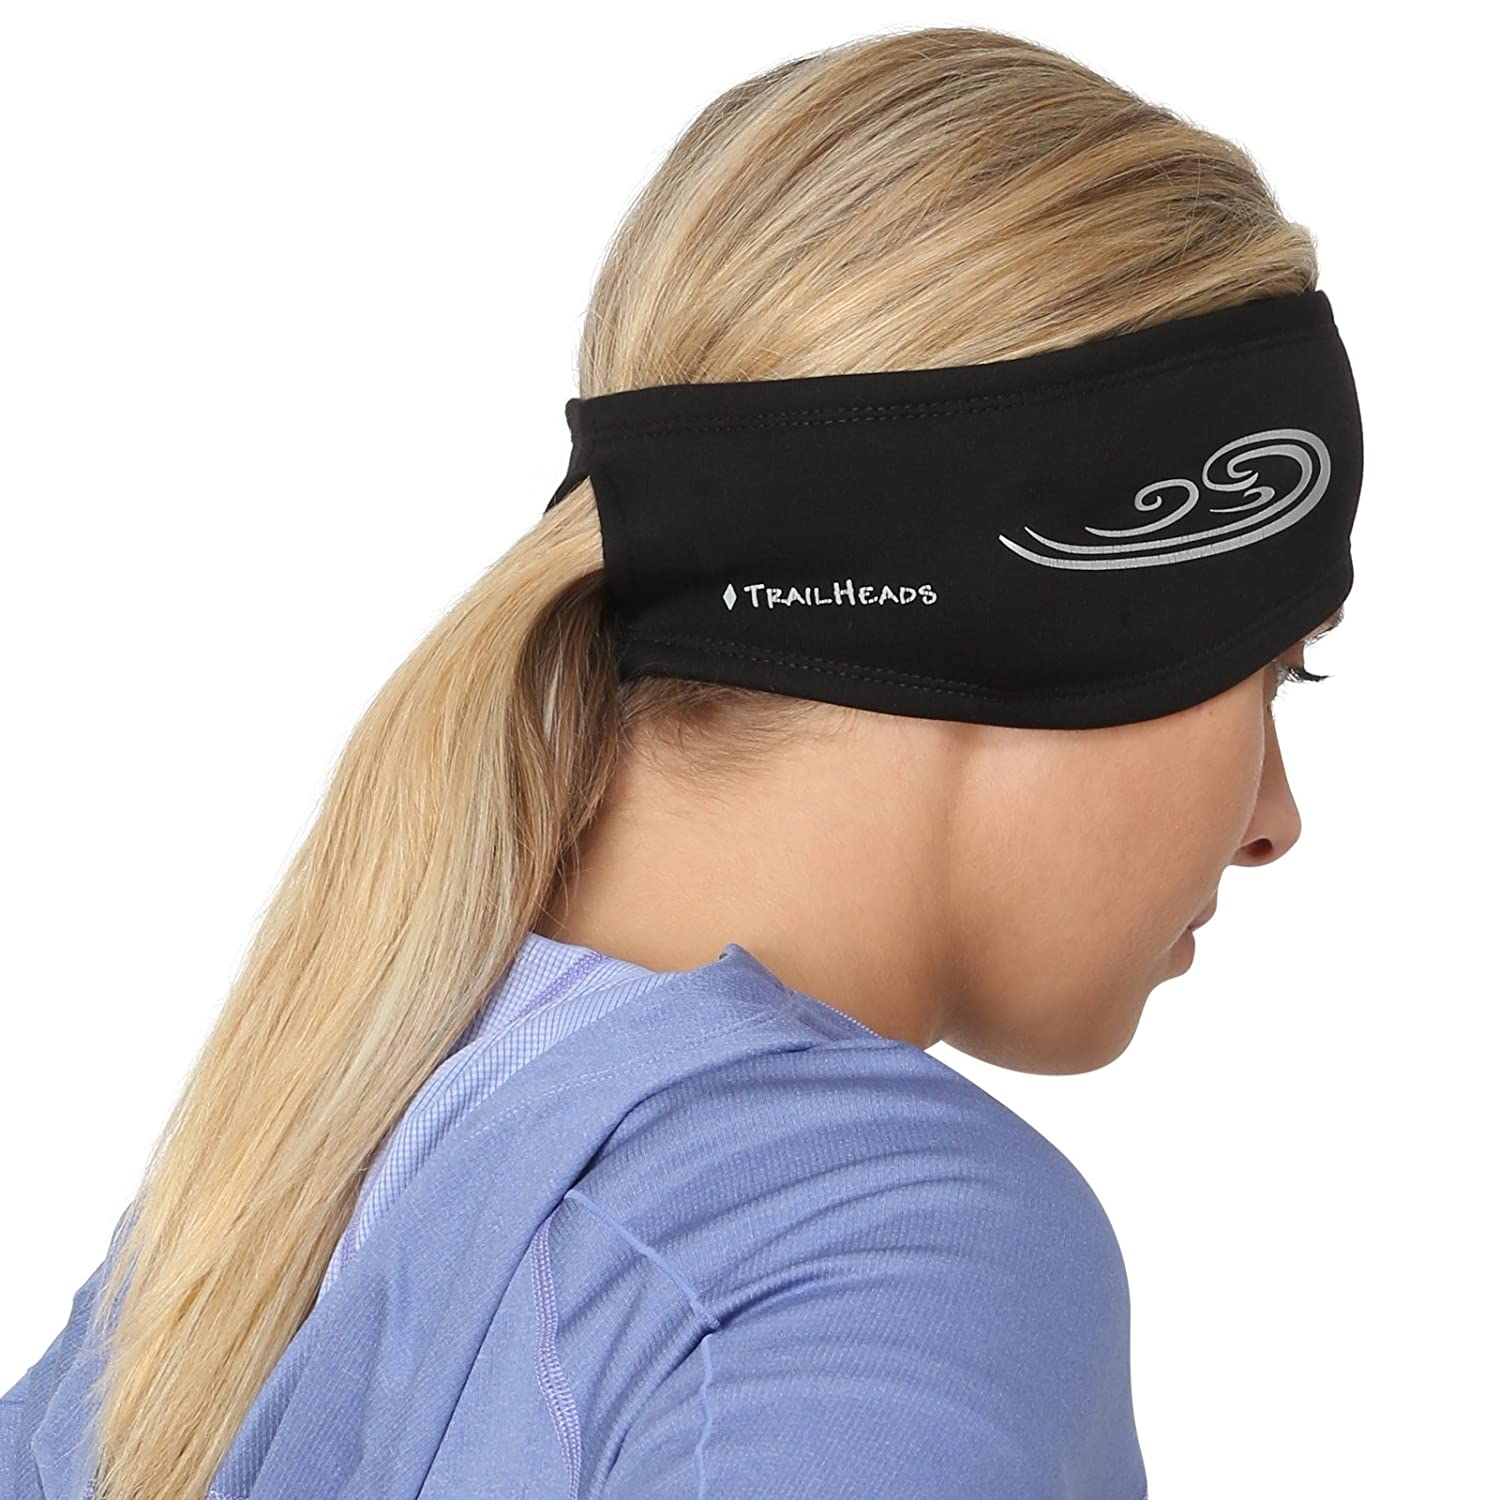 TrailHeads Women's Power Ponytail Headband Black/Reflective Silver made our list of gifts for active women so if you want unique camping gifts for her, you'll find tons of them in our hand-selected list of gift ideas for women who hike, fish and camp!